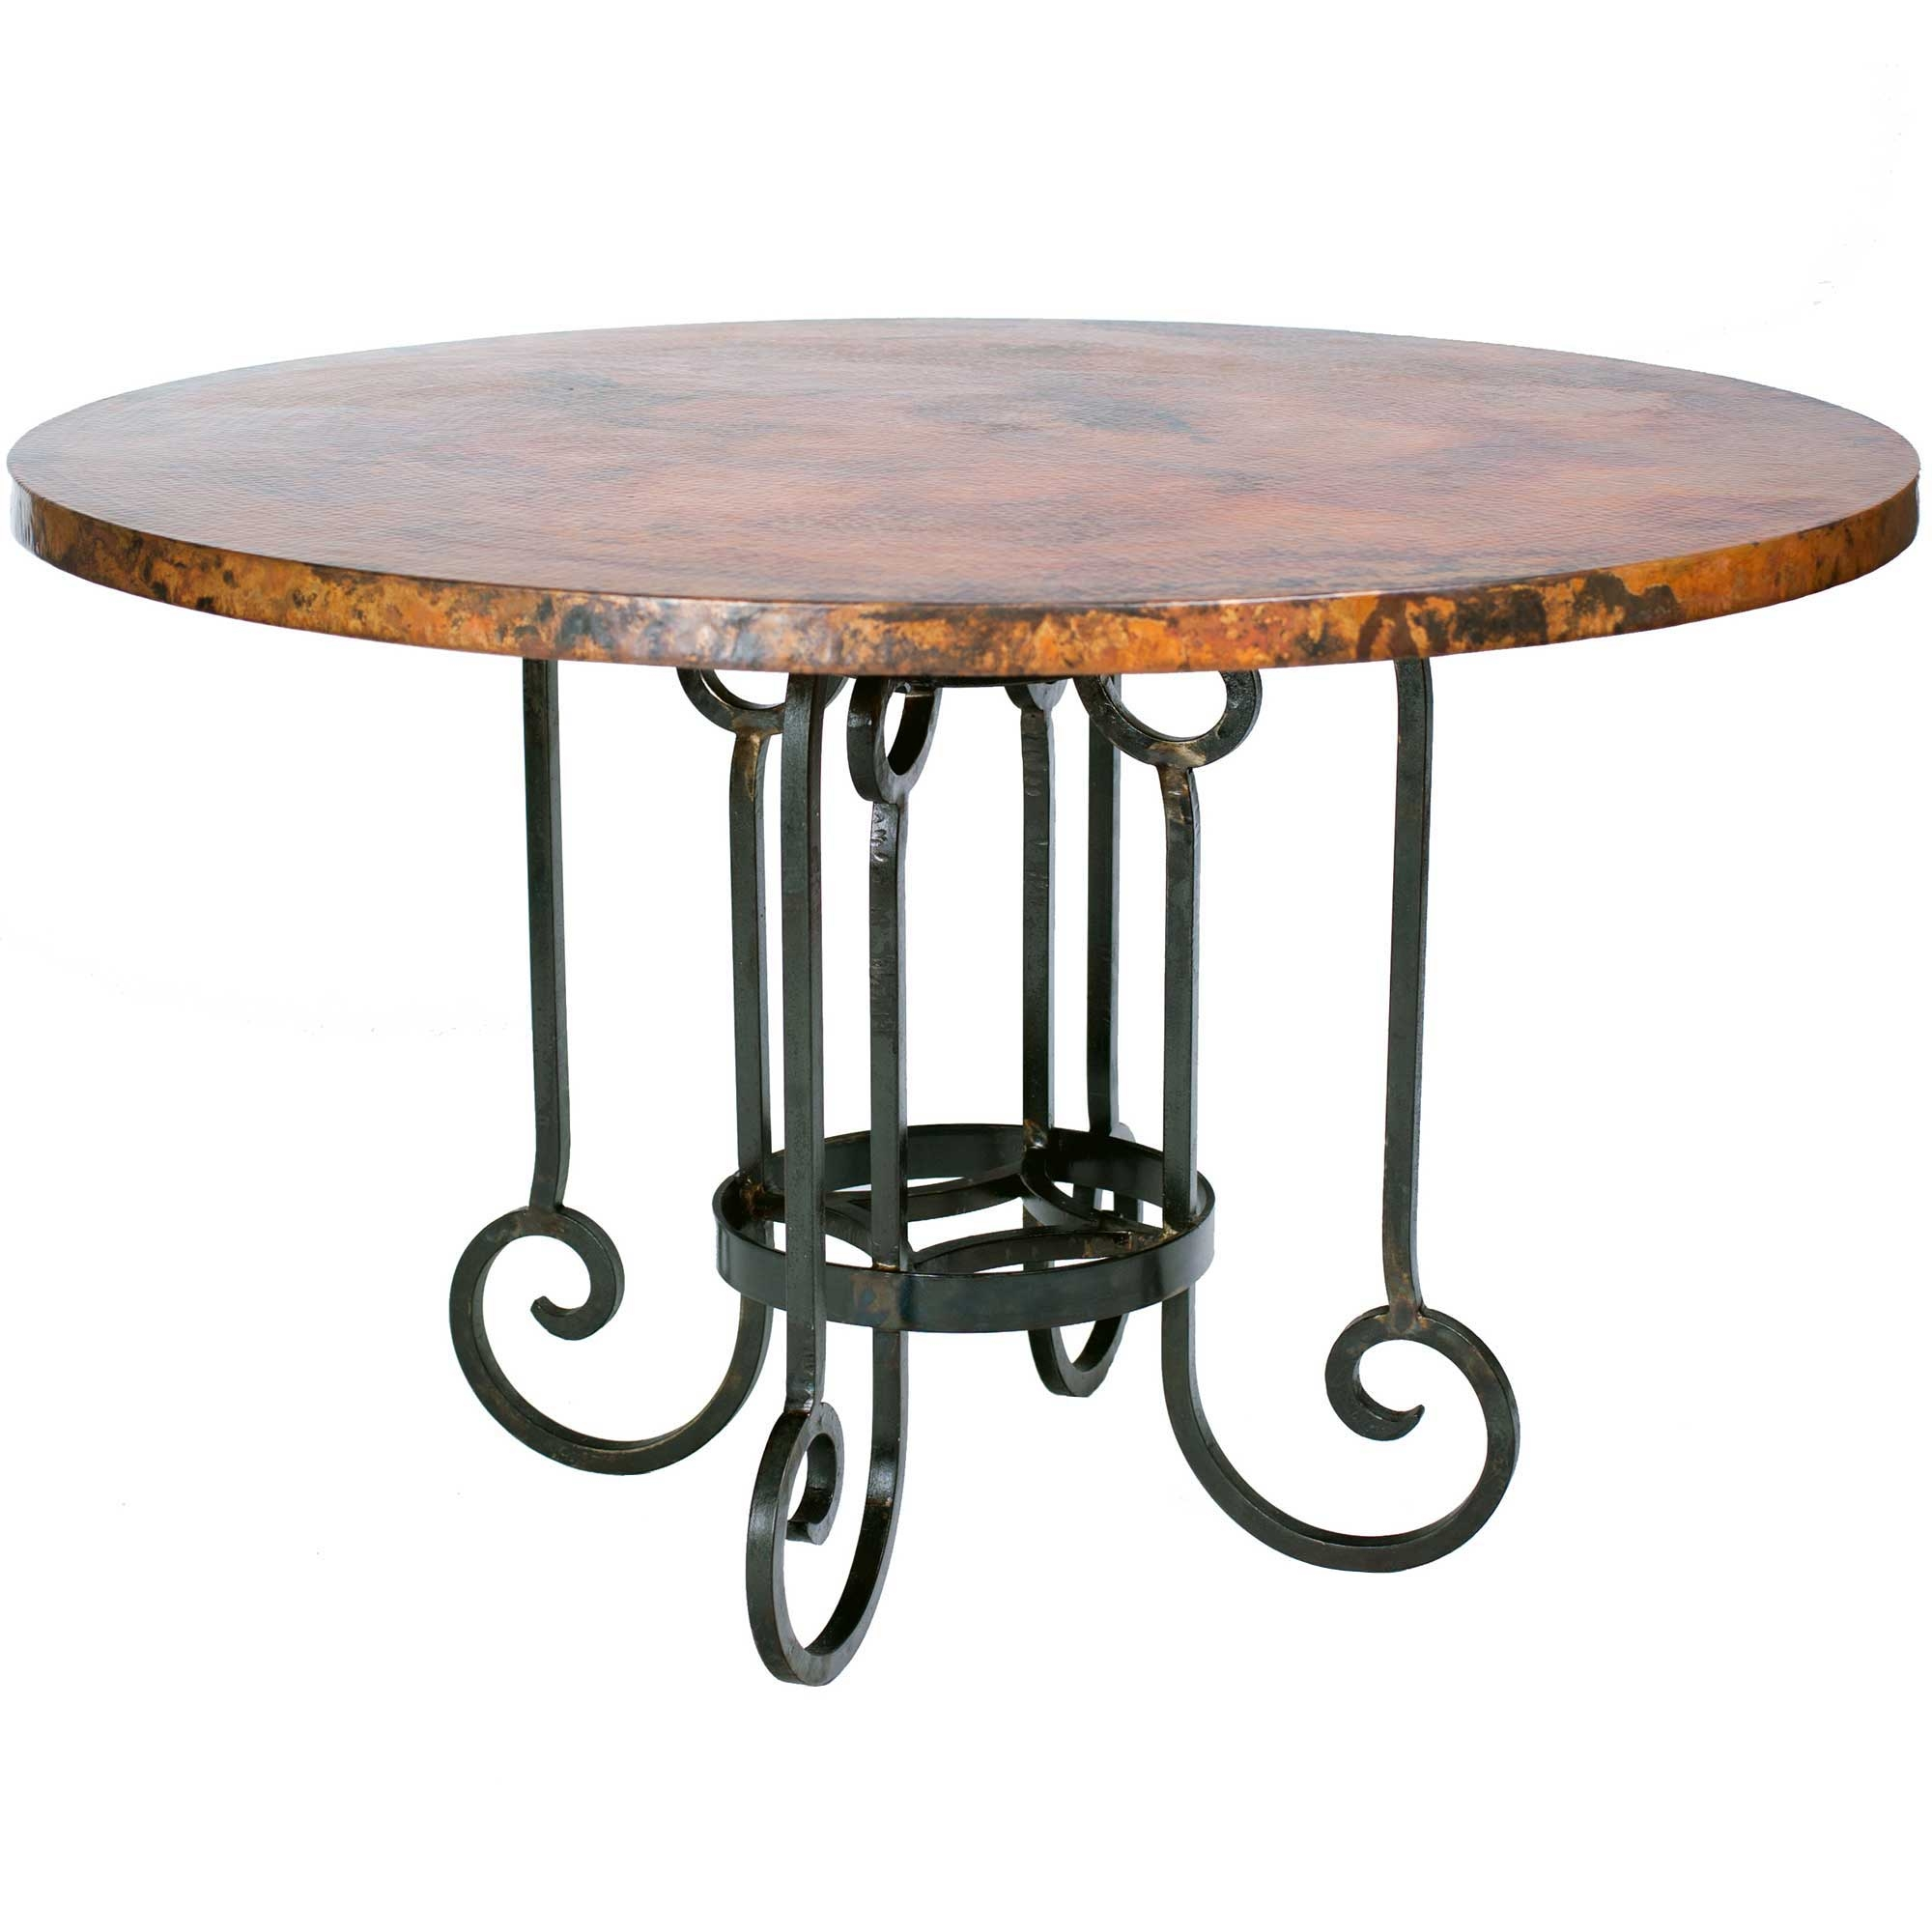 Pictured Here Is The Curled Leg Round Dining Table With Wrought Iron Base And 60